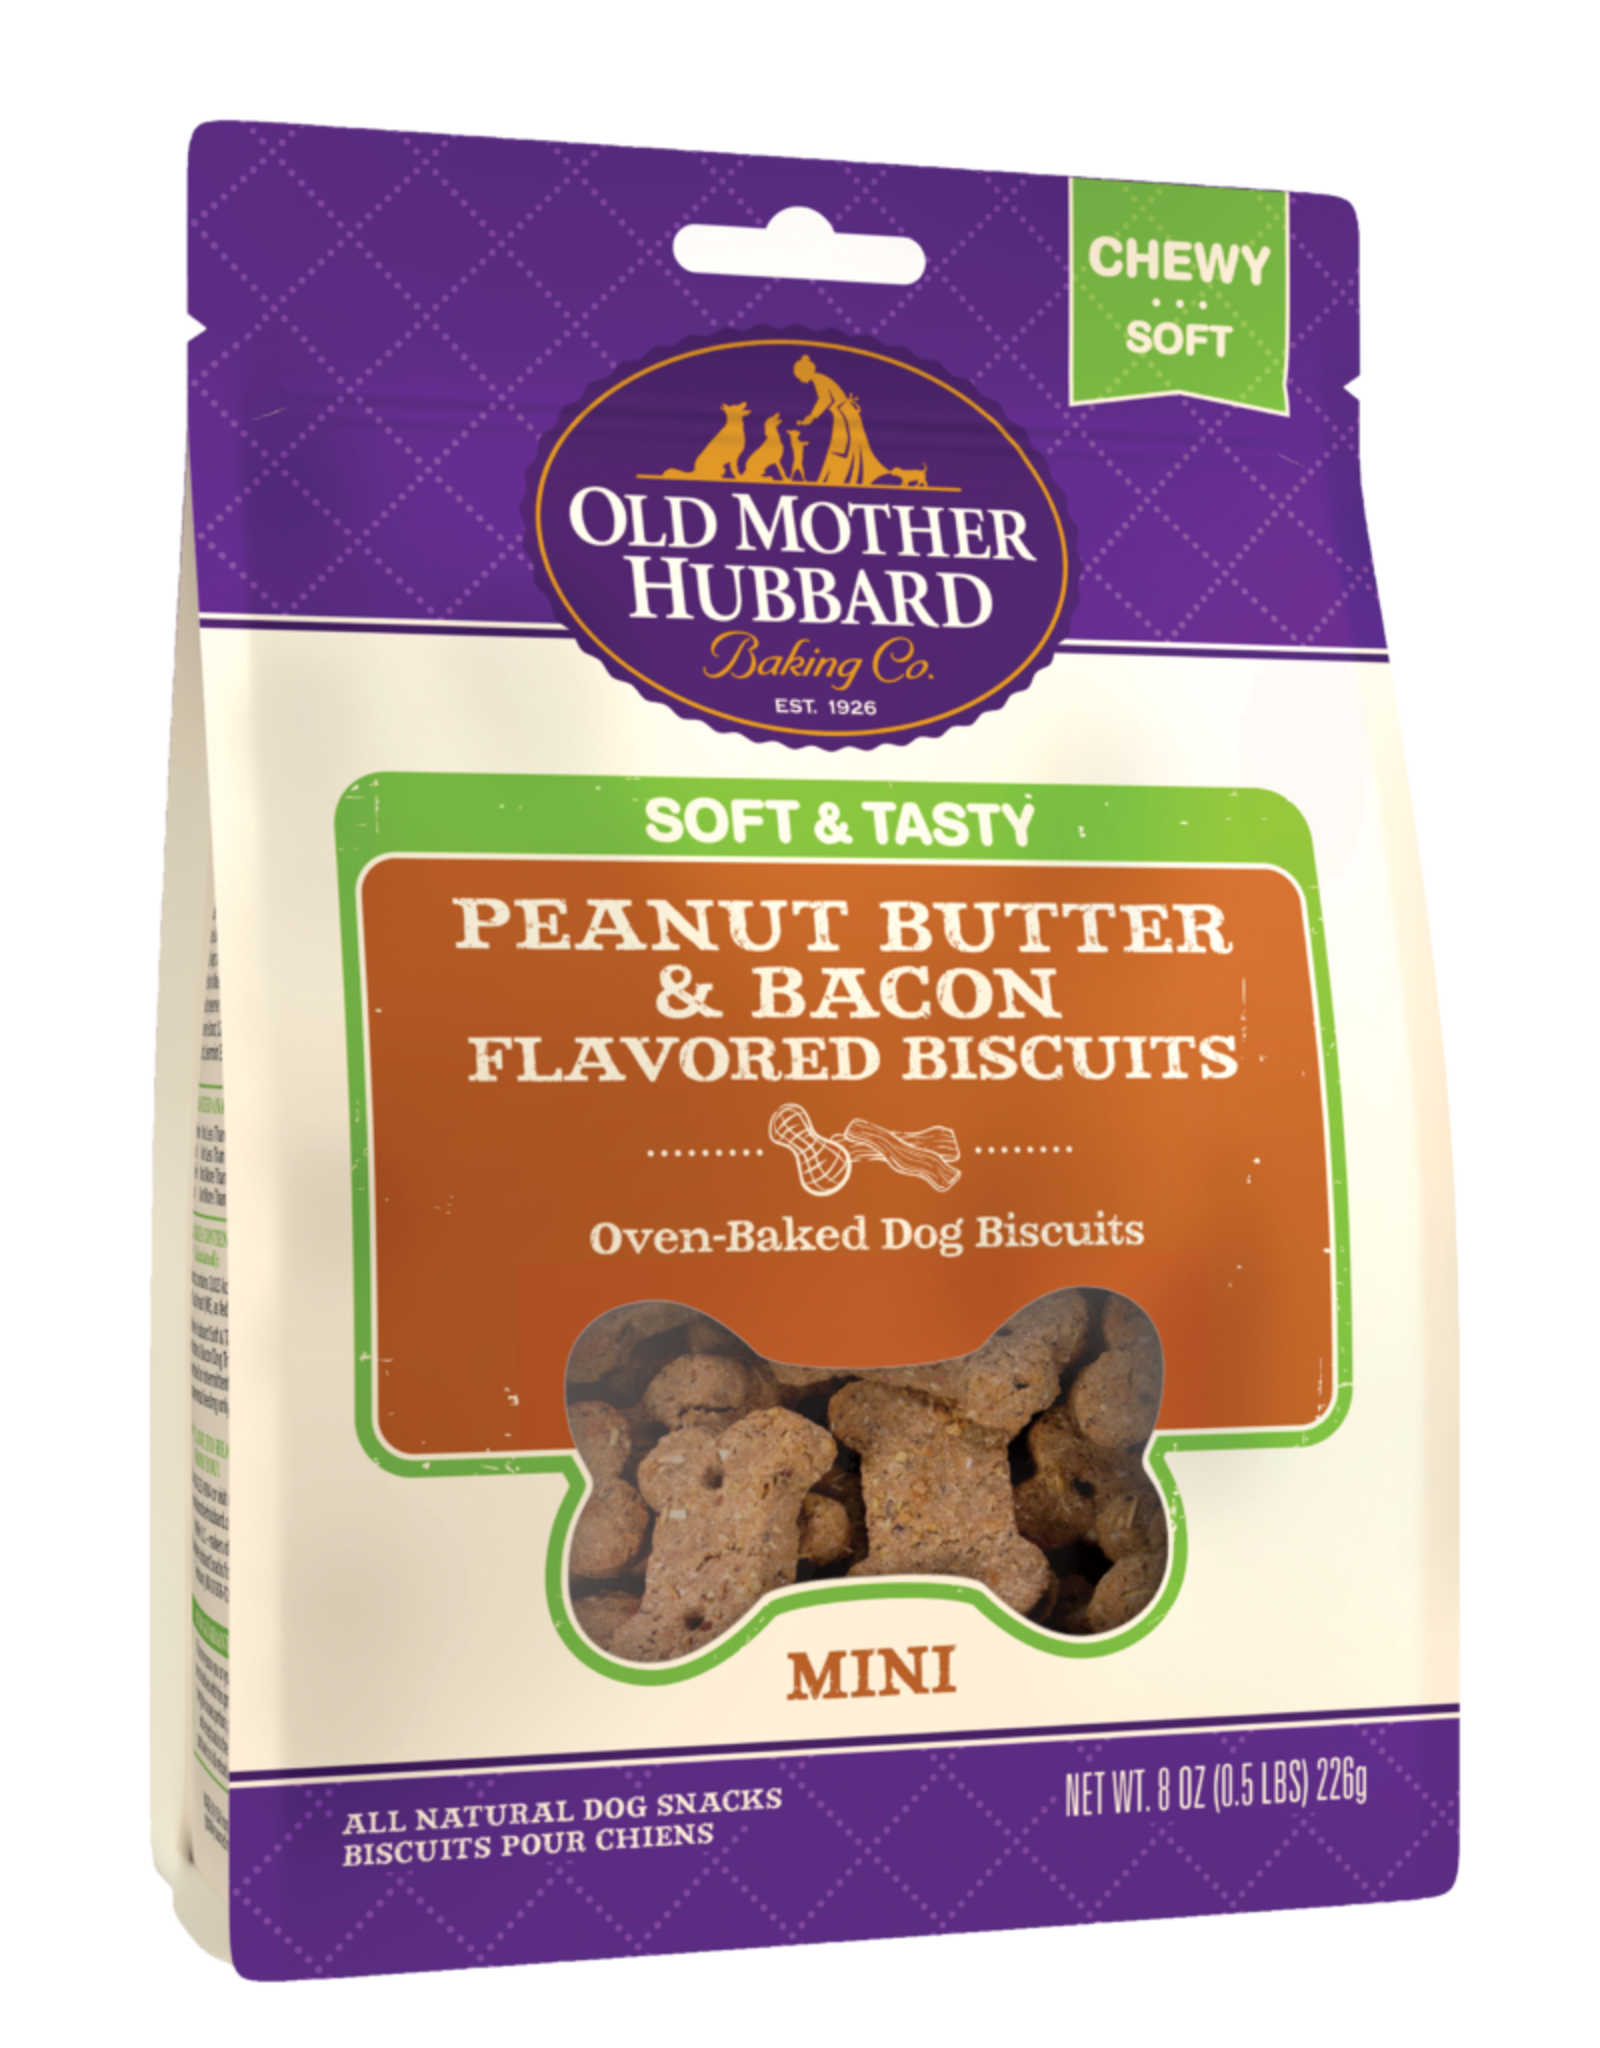 Old Mother Hubbard Old Mother Hubbard Soft & Tasty Peanut Butter & Bacon Mini 8oz